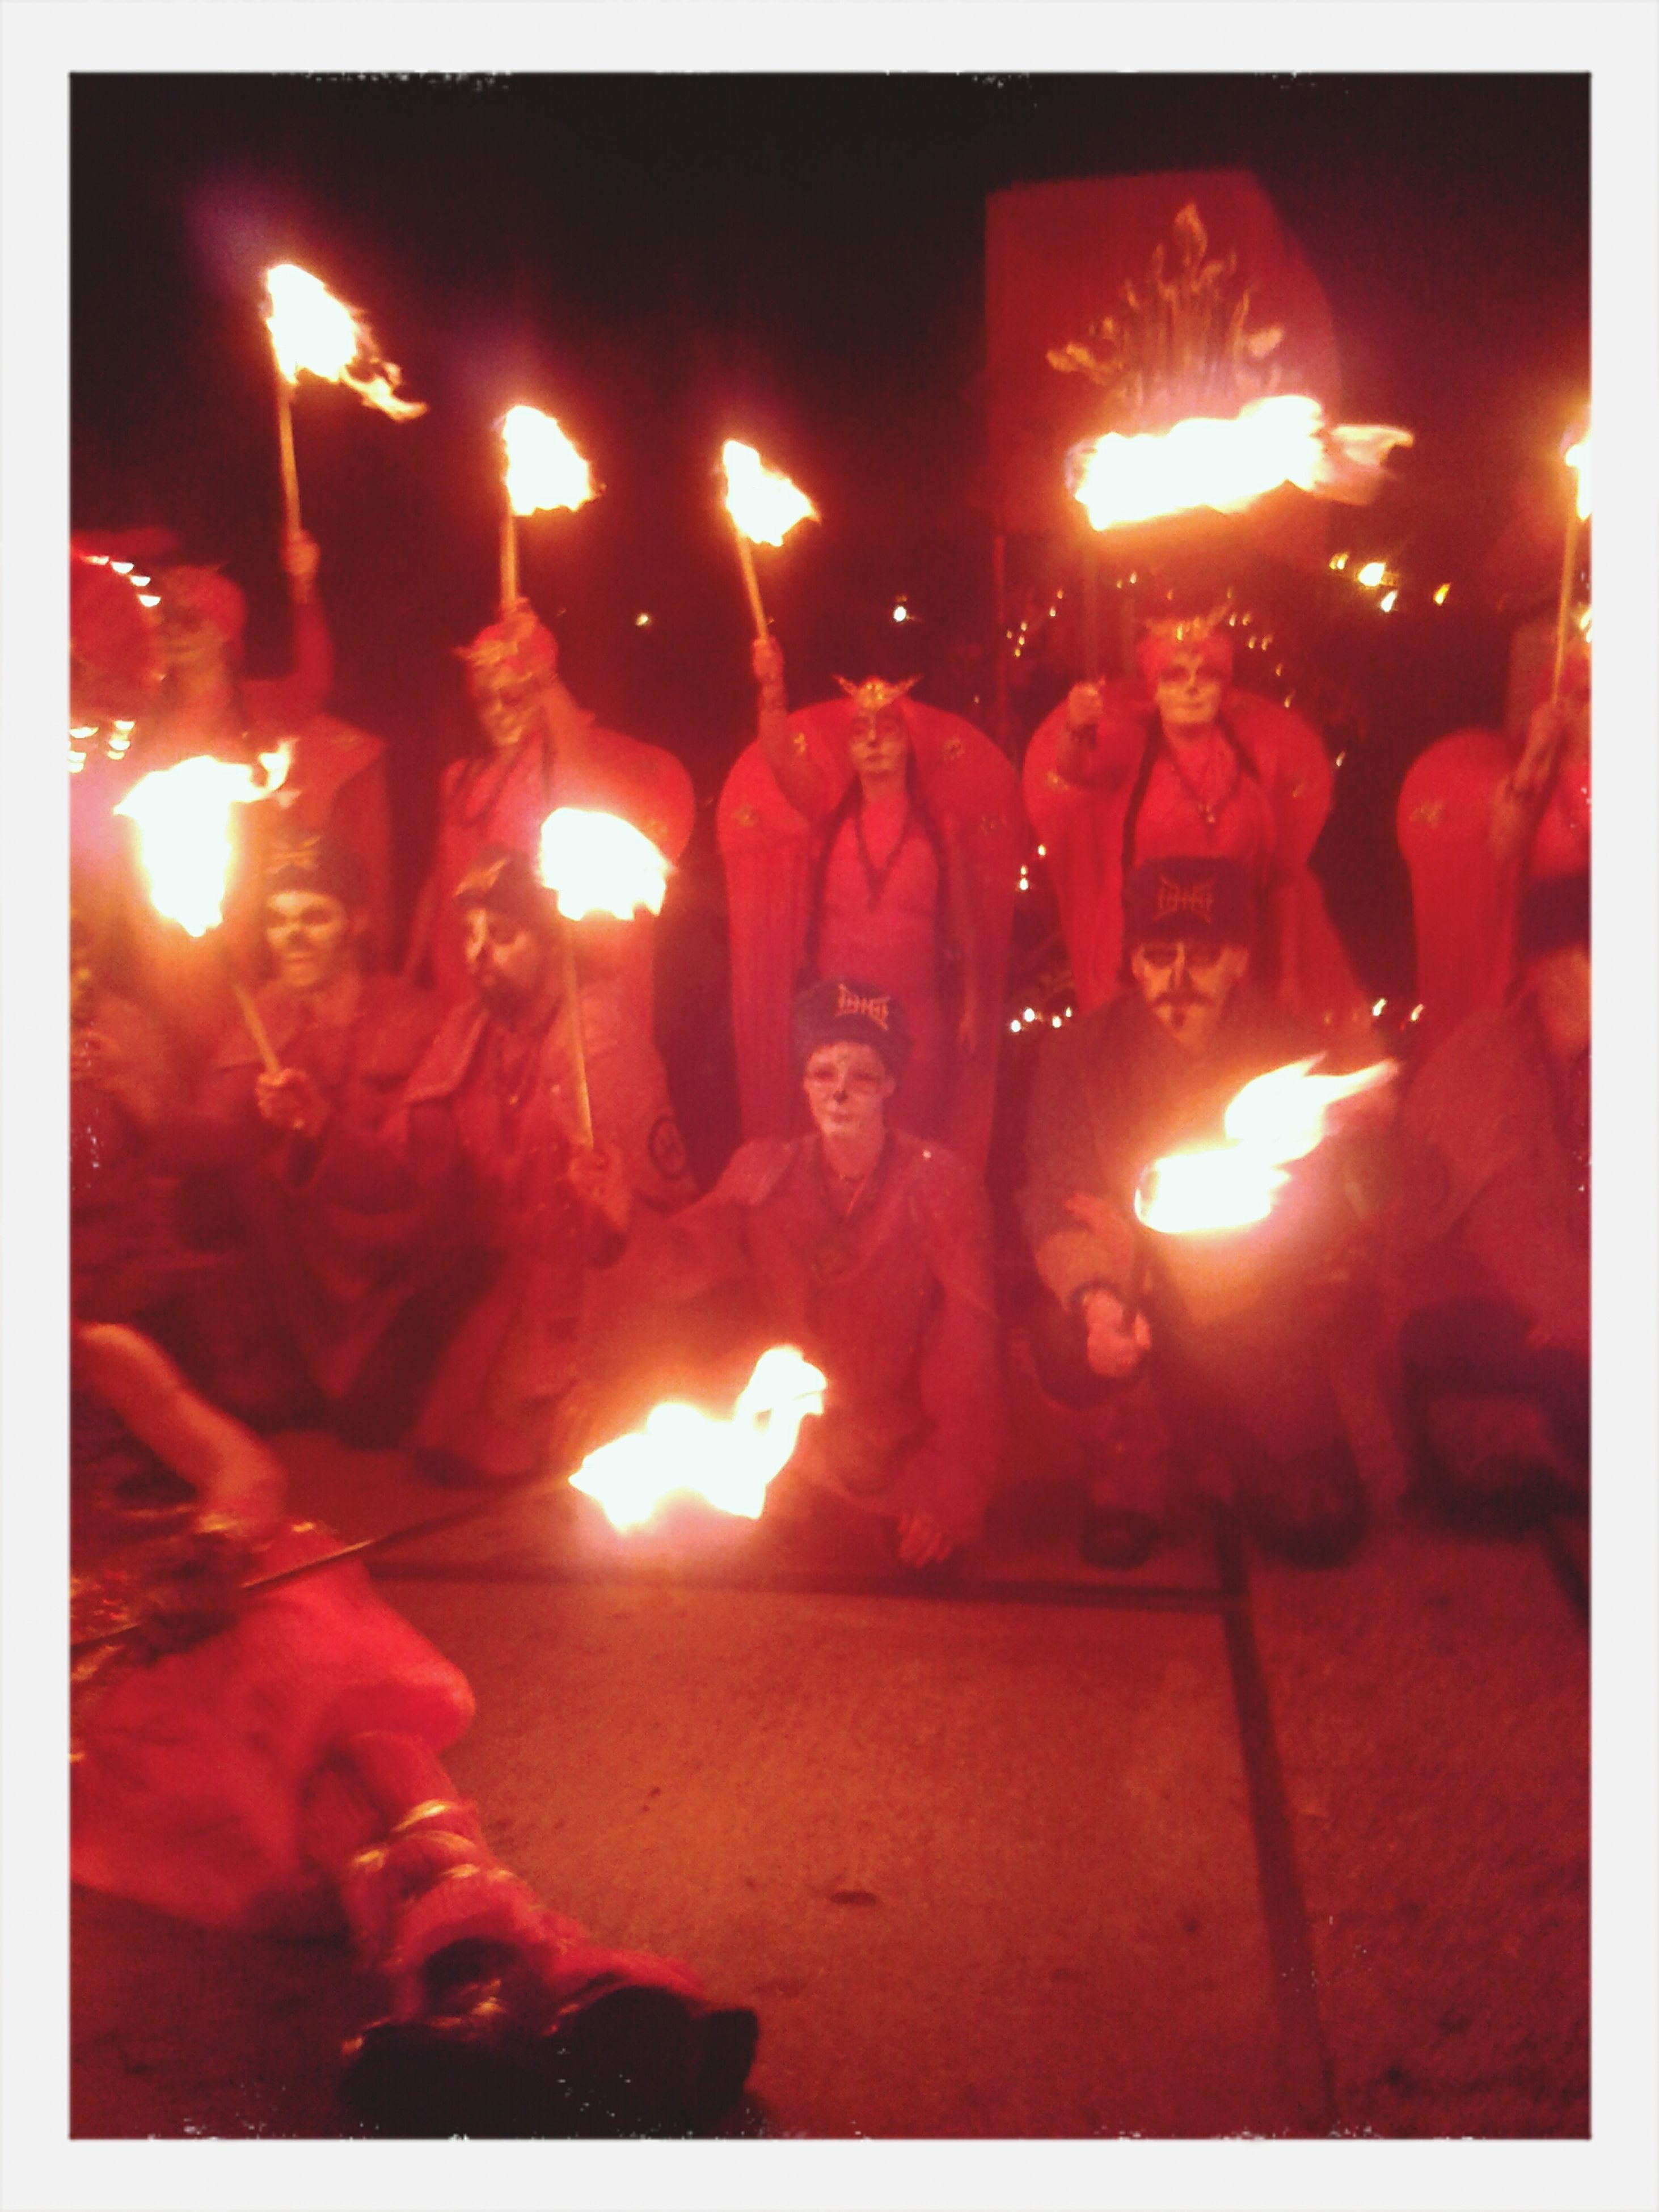 transfer print, illuminated, night, lifestyles, large group of people, burning, men, leisure activity, flame, togetherness, celebration, enjoyment, auto post production filter, fire - natural phenomenon, glowing, event, person, fun, heat - temperature